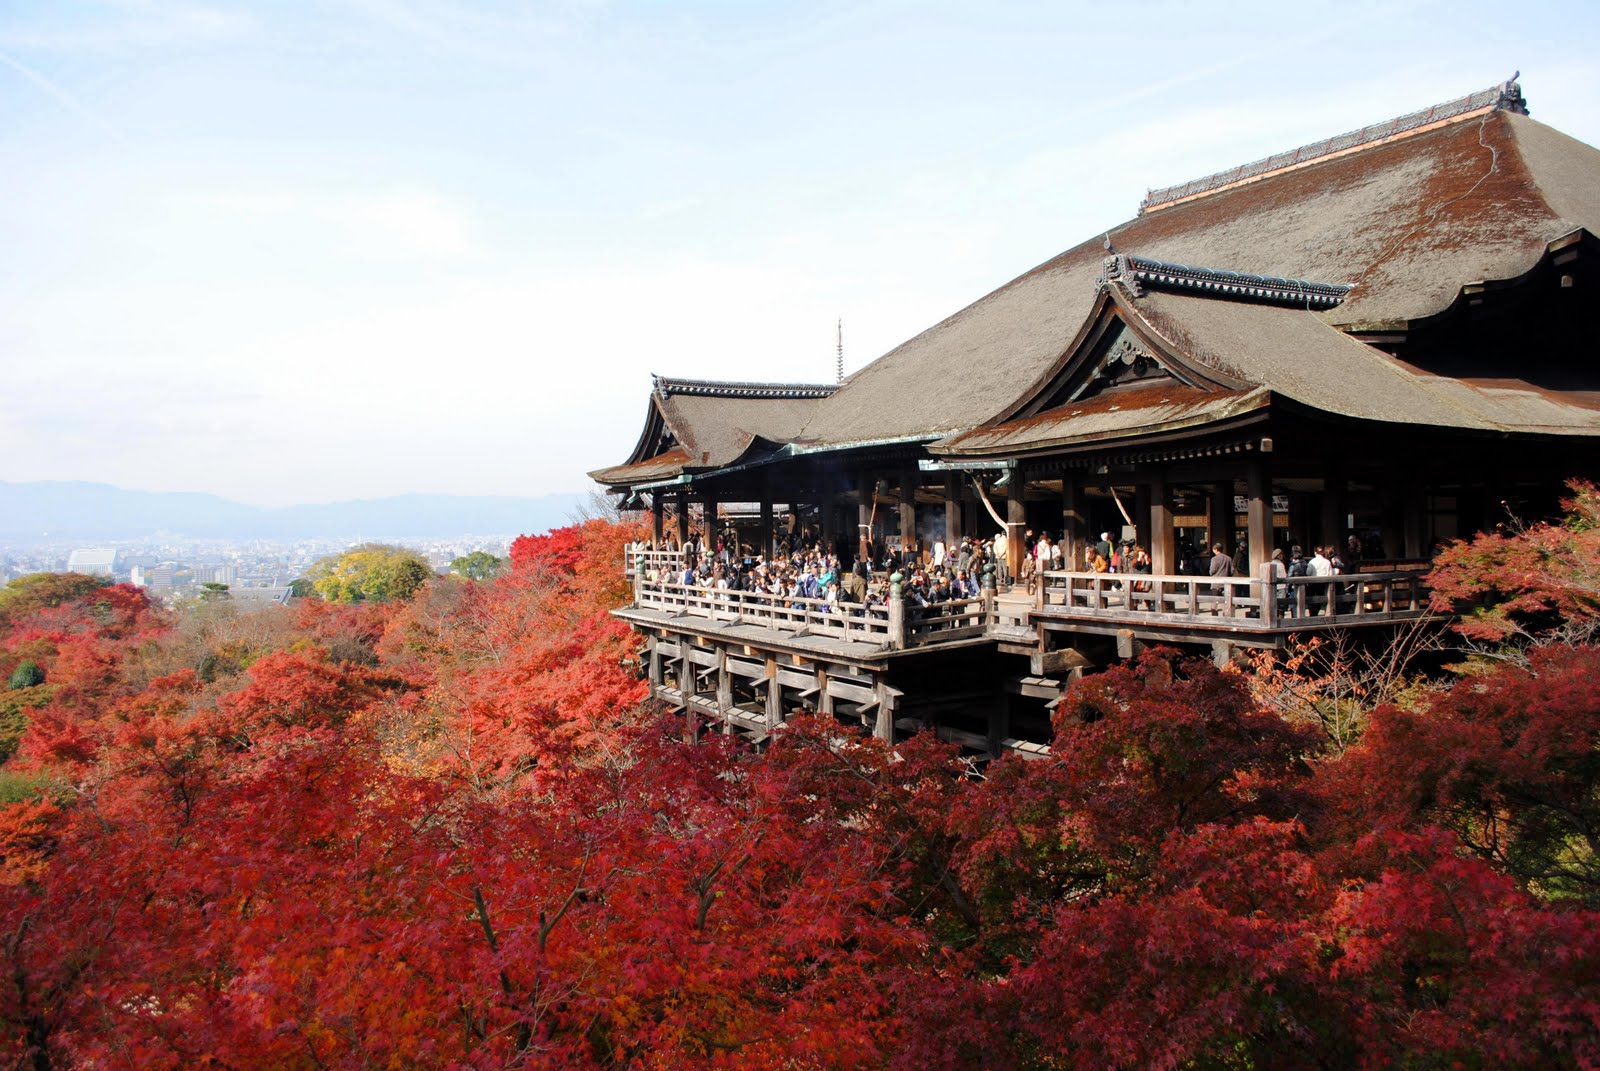 A Coffeeholics Travel Tale: Japan - Day 6: Kiyomizu-dera ...